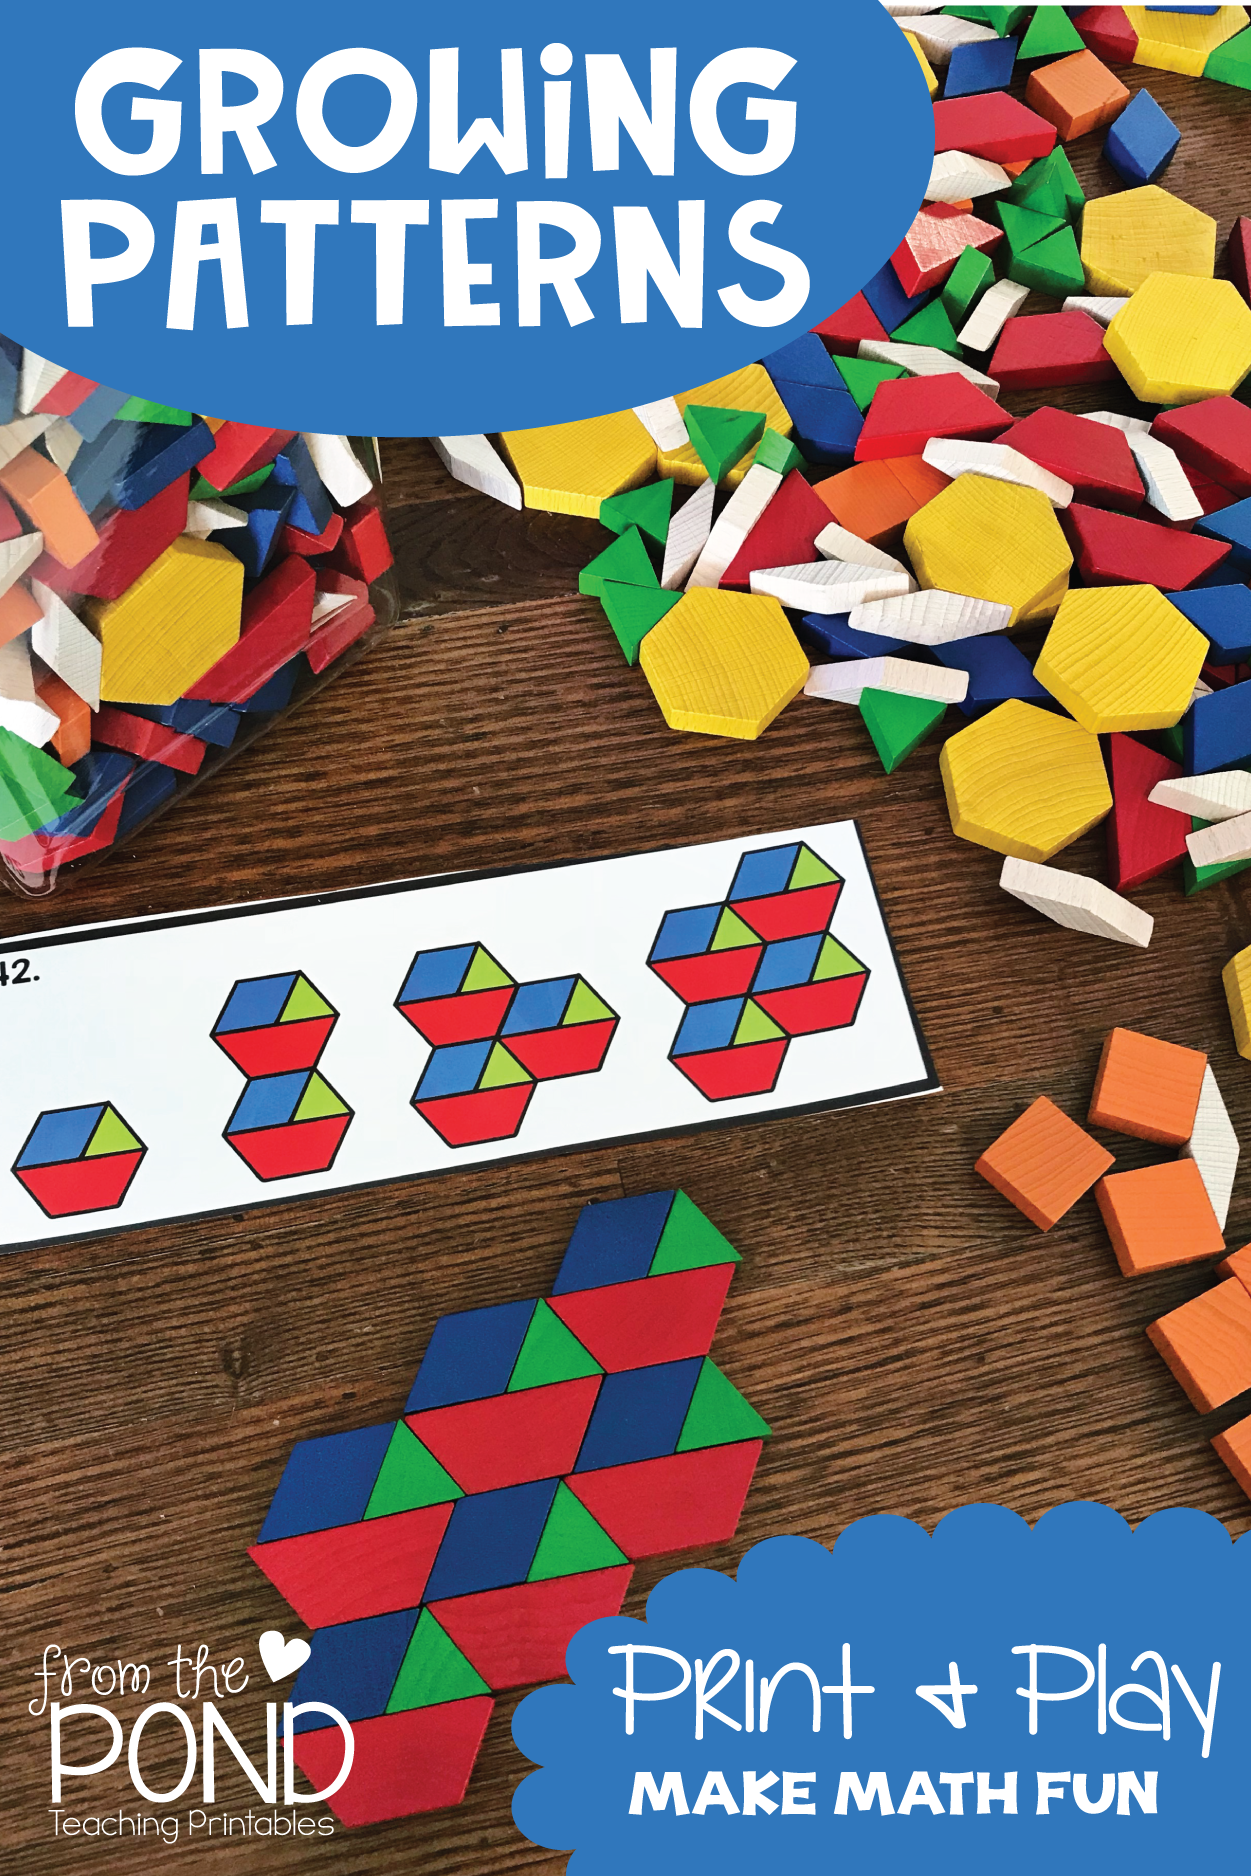 Growing Pattern Activity Cards